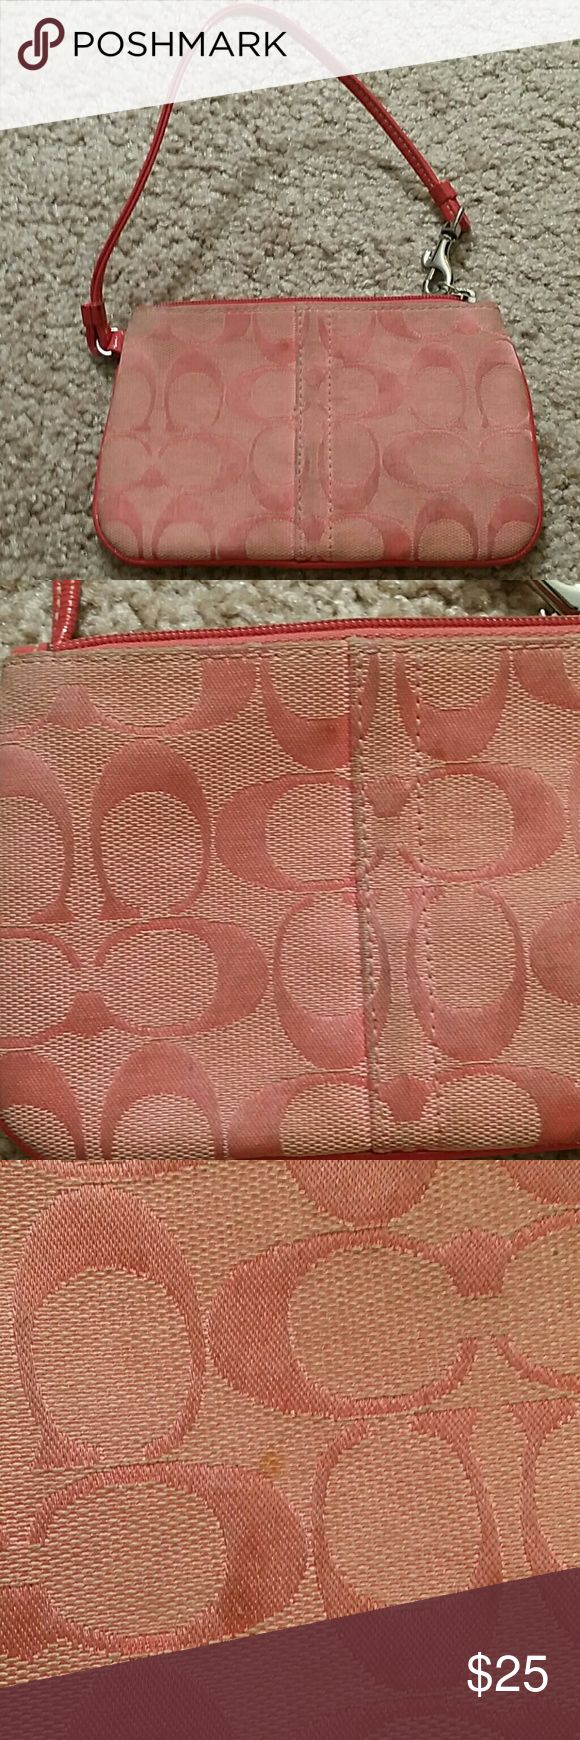 Women's wristlet Coach wristlet. Slightly dirty, I tried to photograph the spots and where it's dirty. Good condition in terms of the material. Coach Bags Clutches & Wristlets